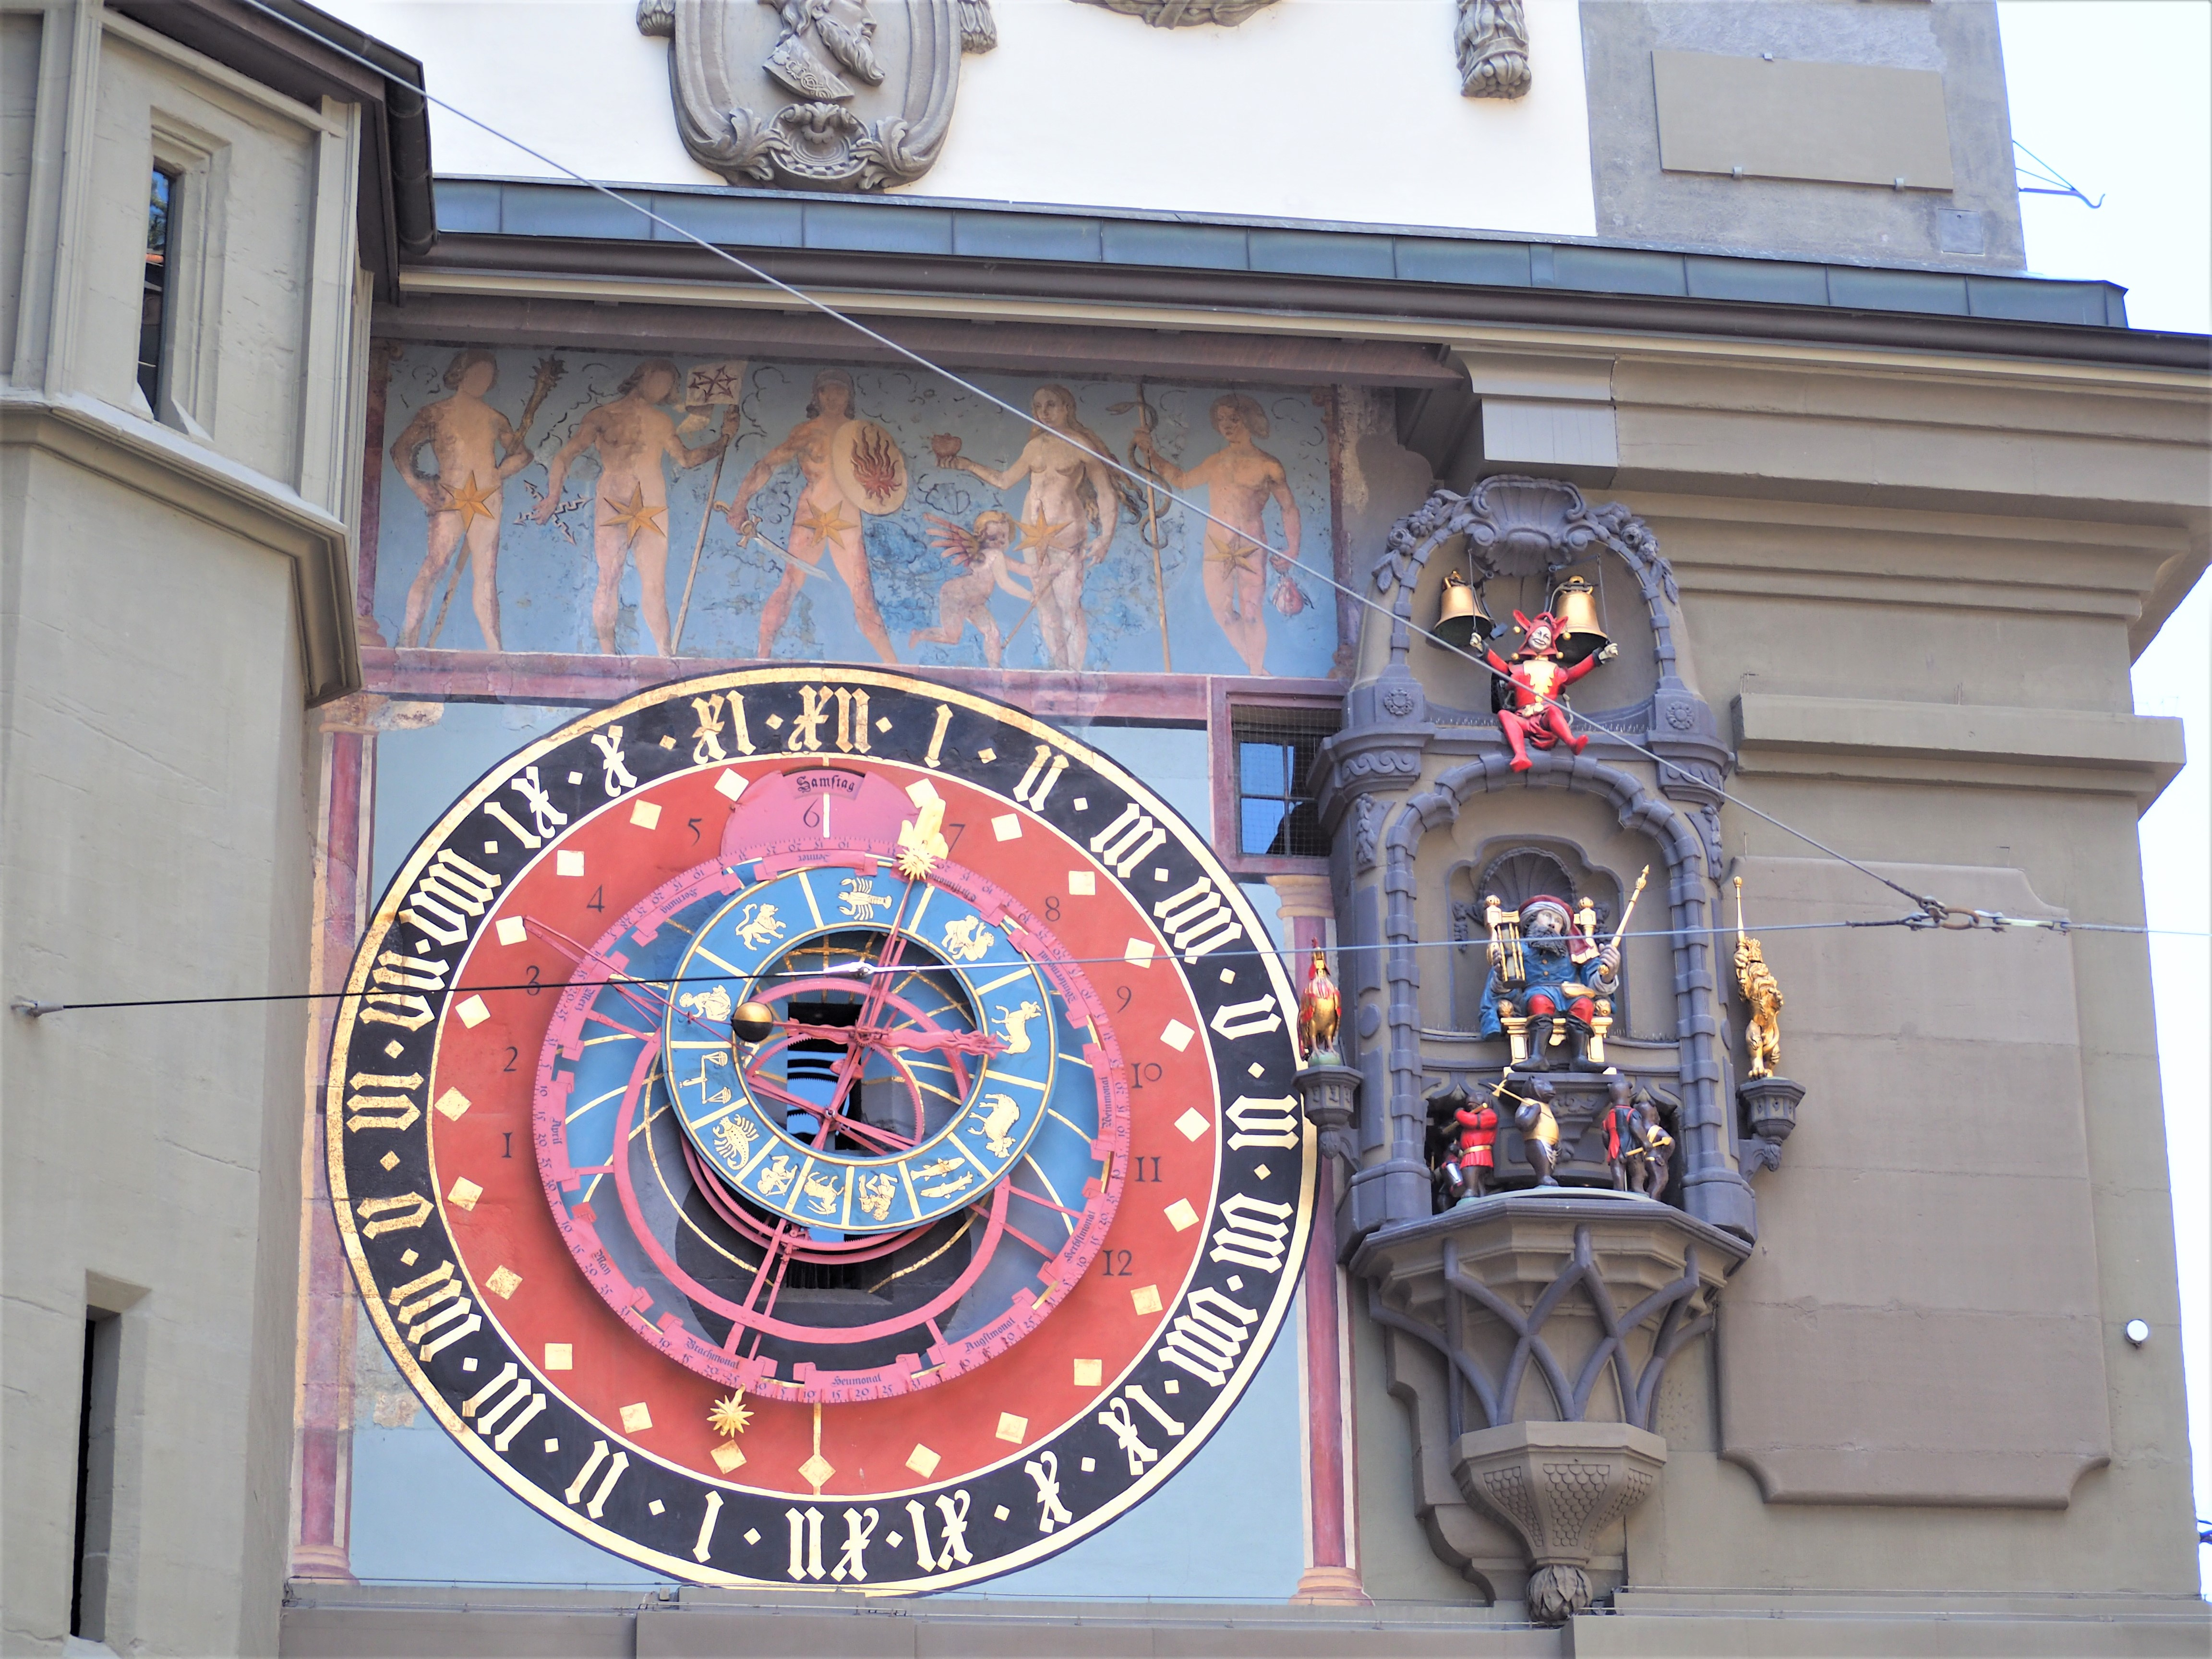 Suiise Berne Zytglogge horloge